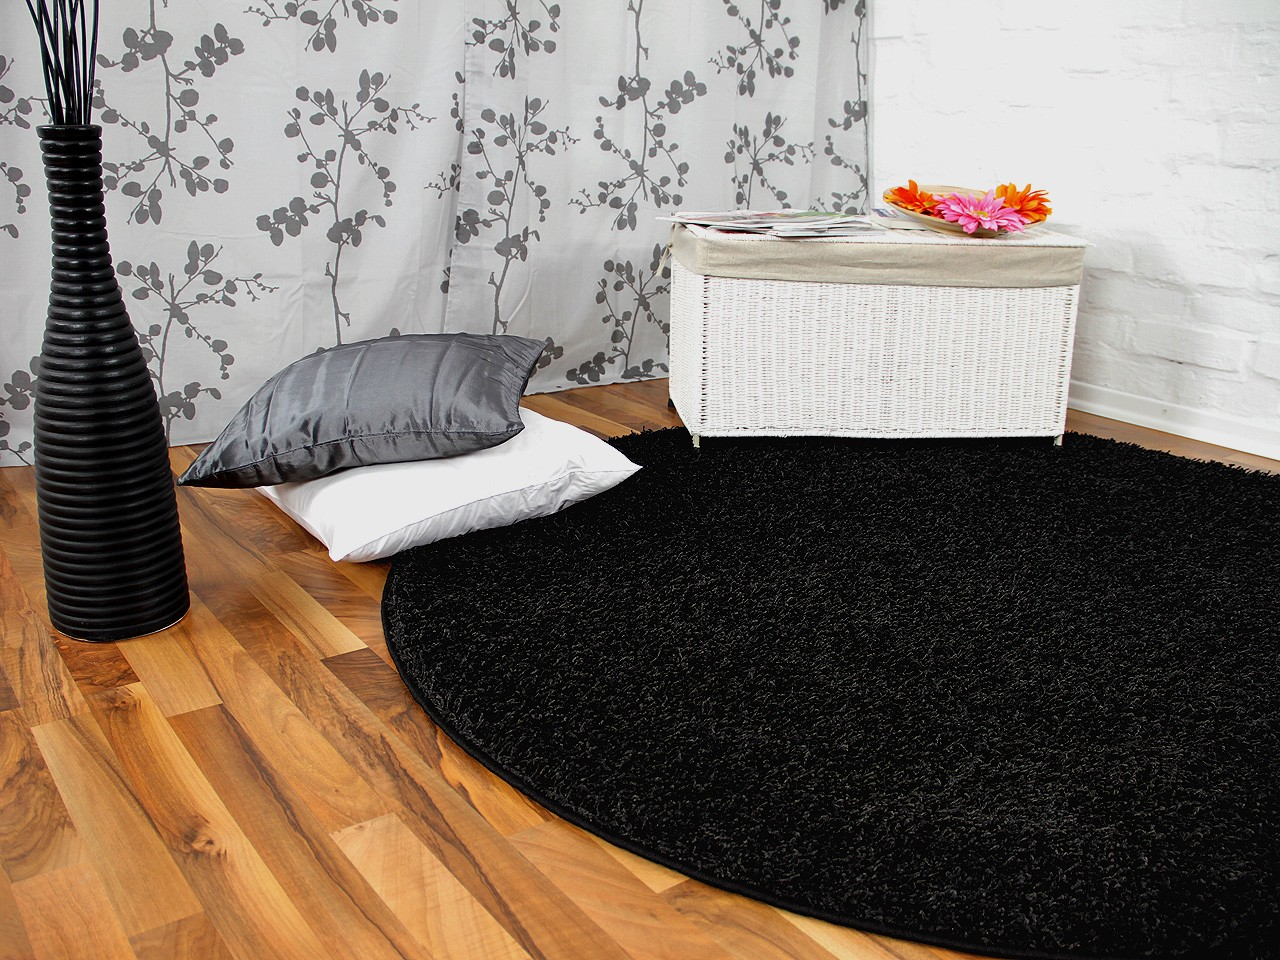 hochflor langflor teppich shaggy nova schwarz rund ebay. Black Bedroom Furniture Sets. Home Design Ideas